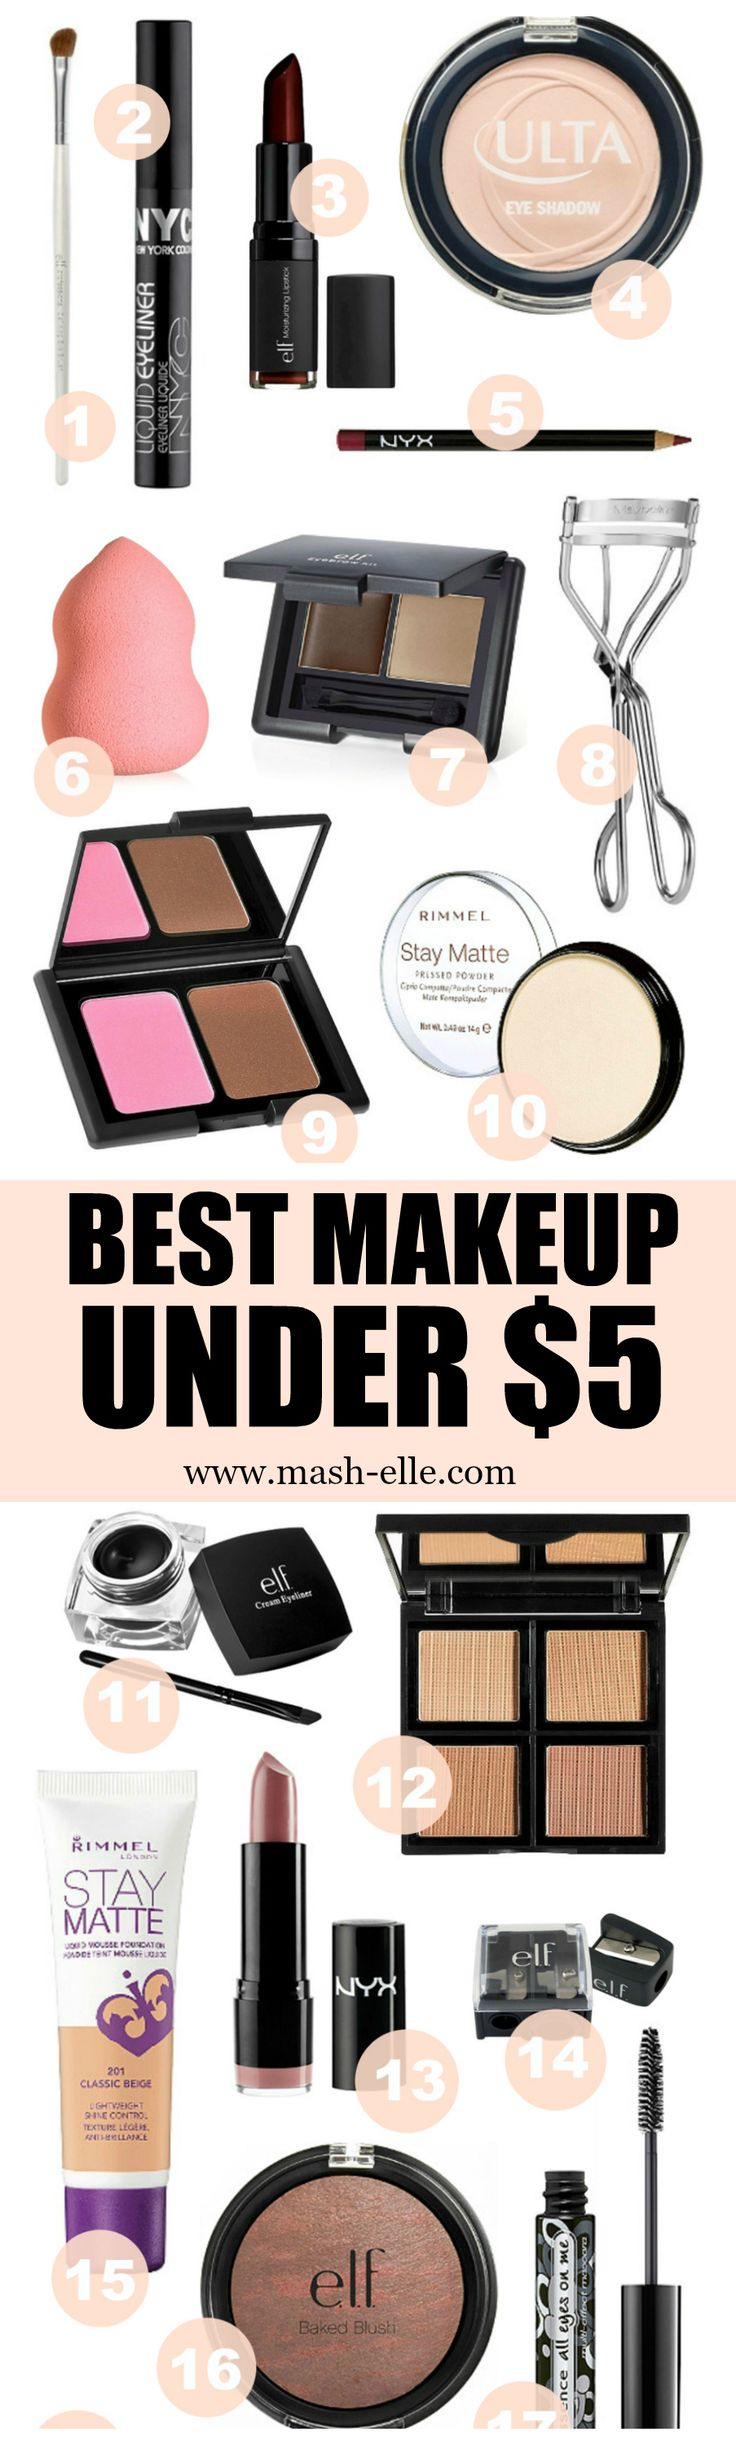 Finally a roundup of the best makeup products under $5! Every single item on…